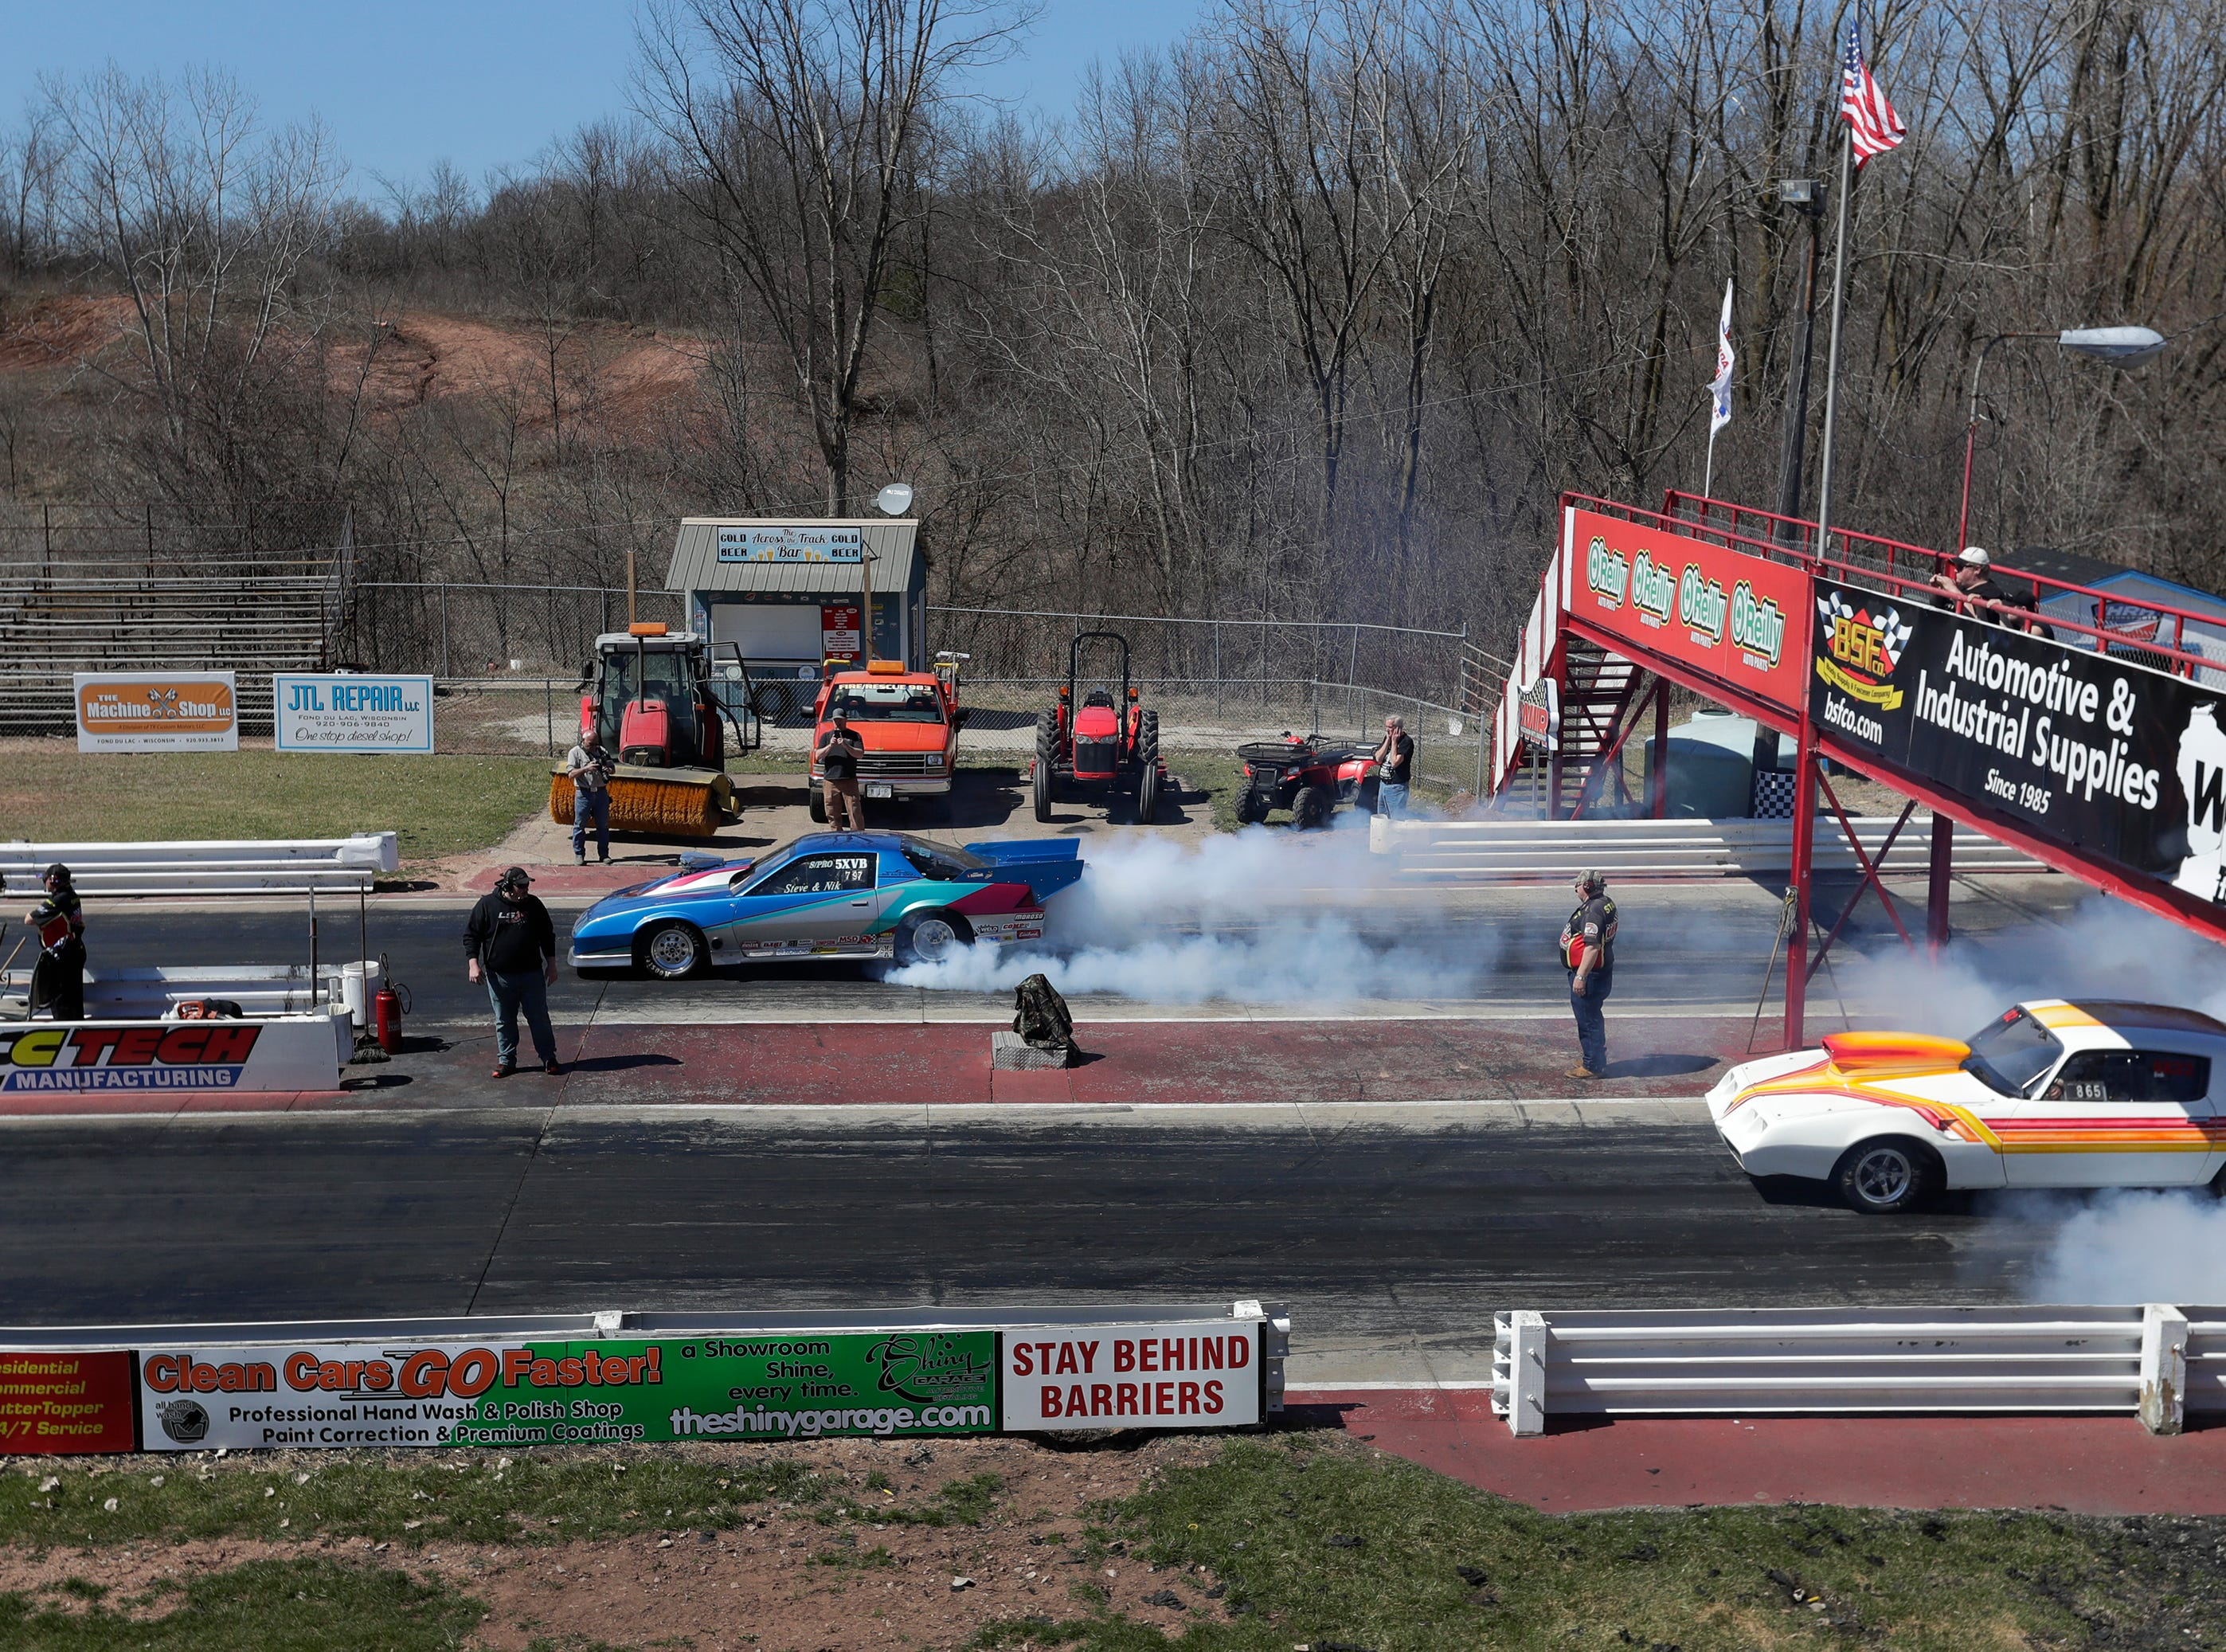 Cars do burn outs before their test run during the Wisconsin International Raceway Strip Test & Tune event Saturday, April 19, 2019, in Kaukauna, Wis. Drivers spent the day getting safety inspections, tune ups and test runs on the track for the upcoming season.Dan Powers/USA TODAY NETWORK-Wisconsin